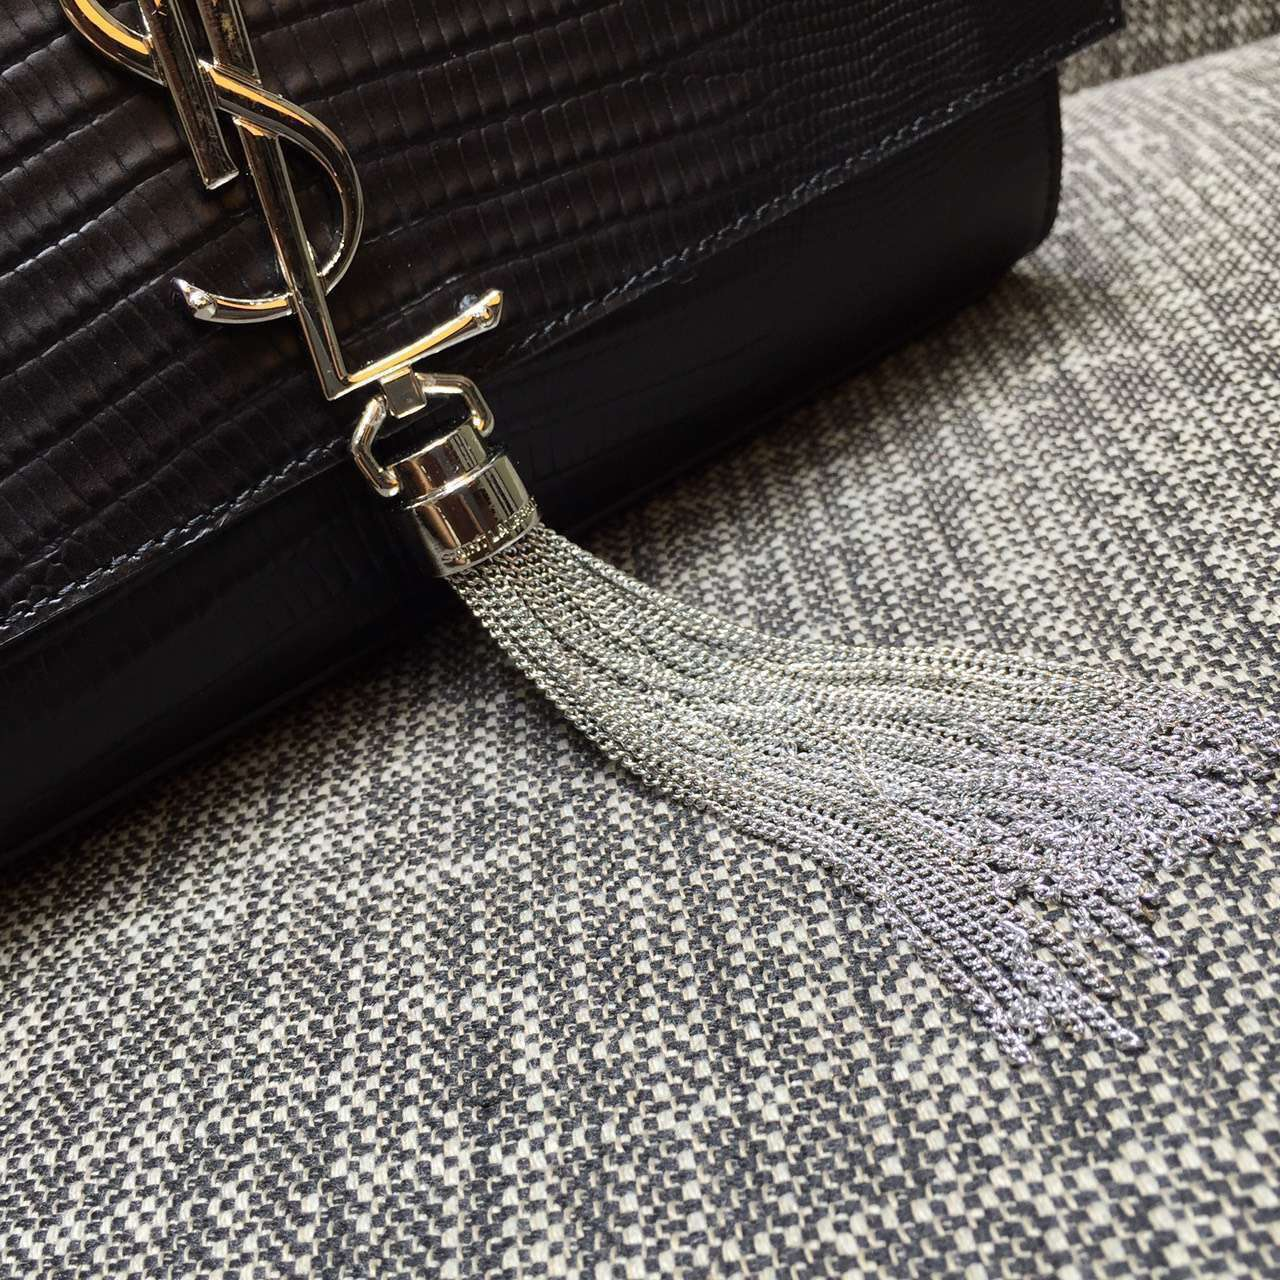 2015 New Saint Laurent Bag Cheap Sale-Saint Laurent Classic Medium Monogram Tassel Satchel in Black Lizard Embossed Leather